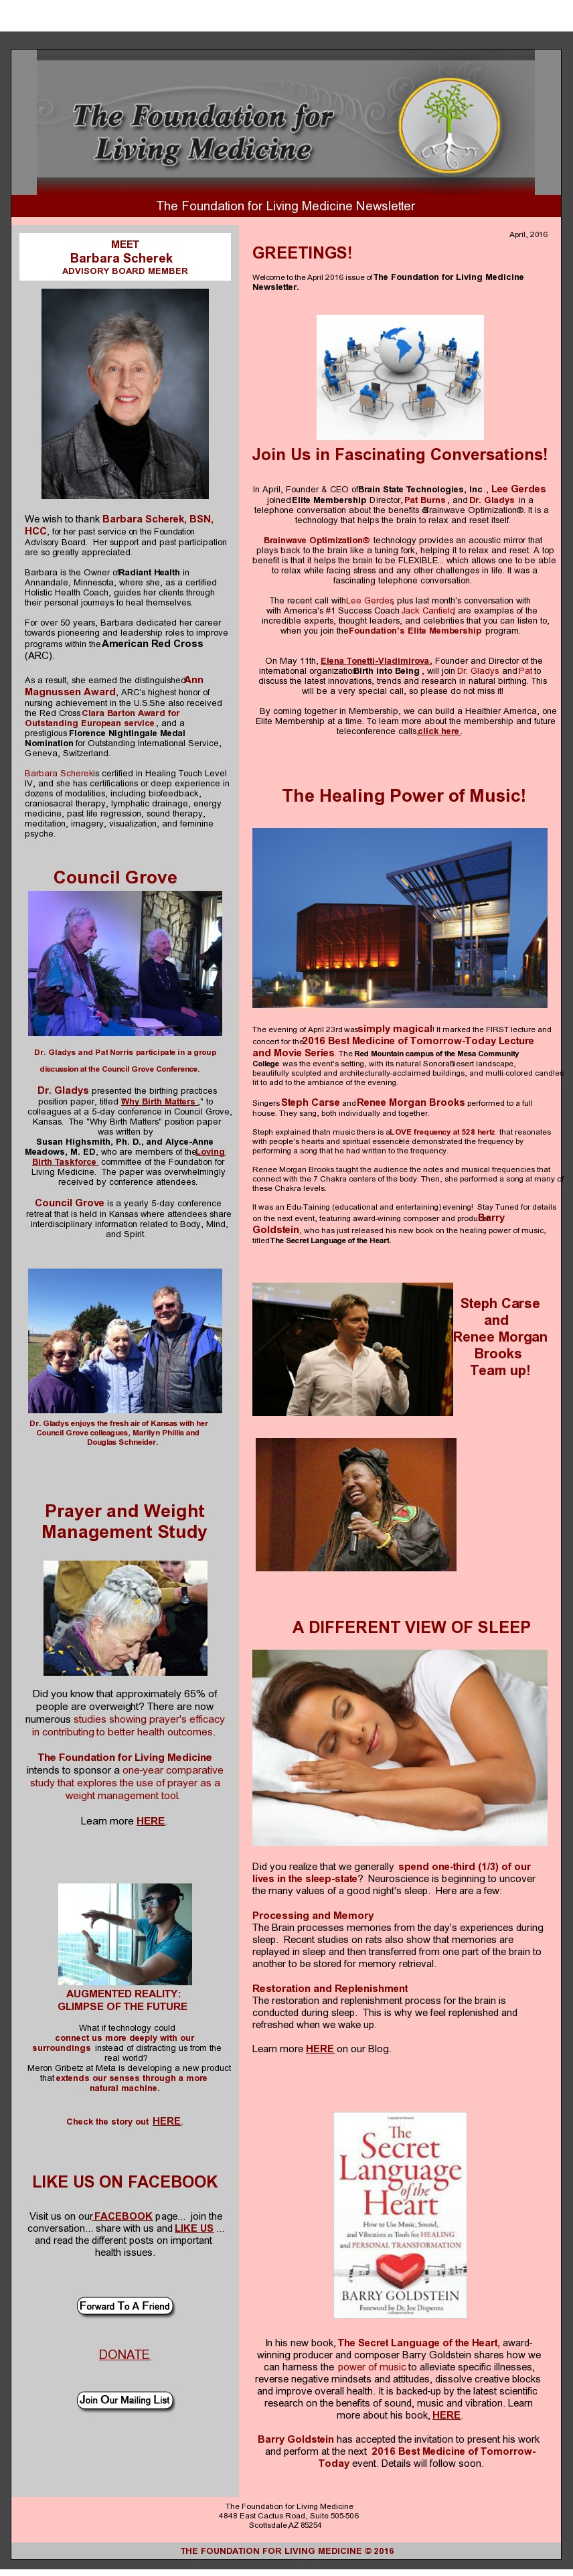 flm_newsletter_April_2016.jpg